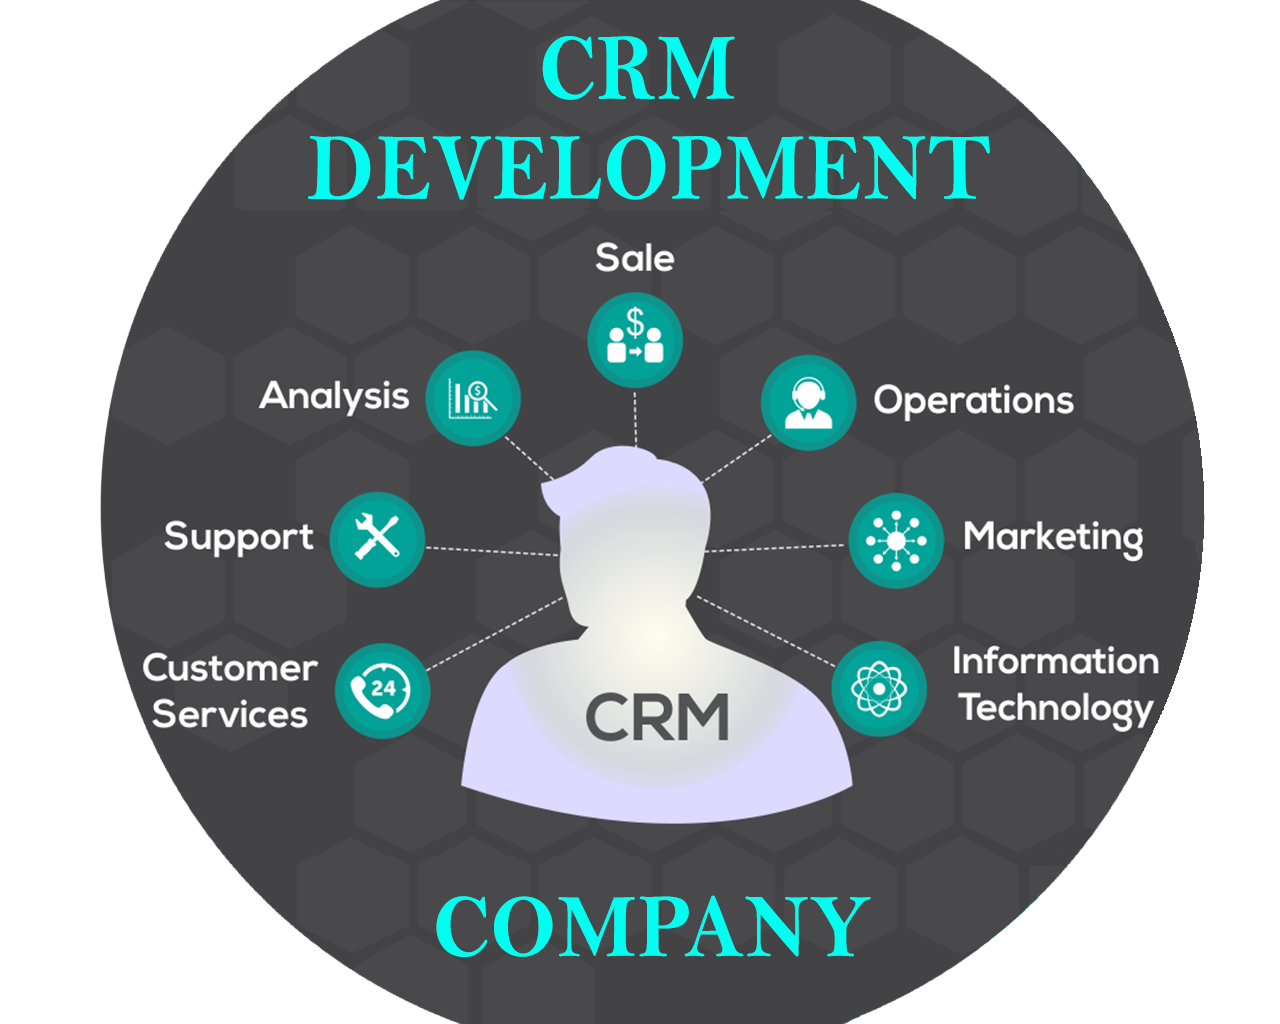 It Company India Is A Crm Development Crm Software Solutions Companies Rely Heavily On Customer Relationship Management Crm Technology Tools To Manage Inte